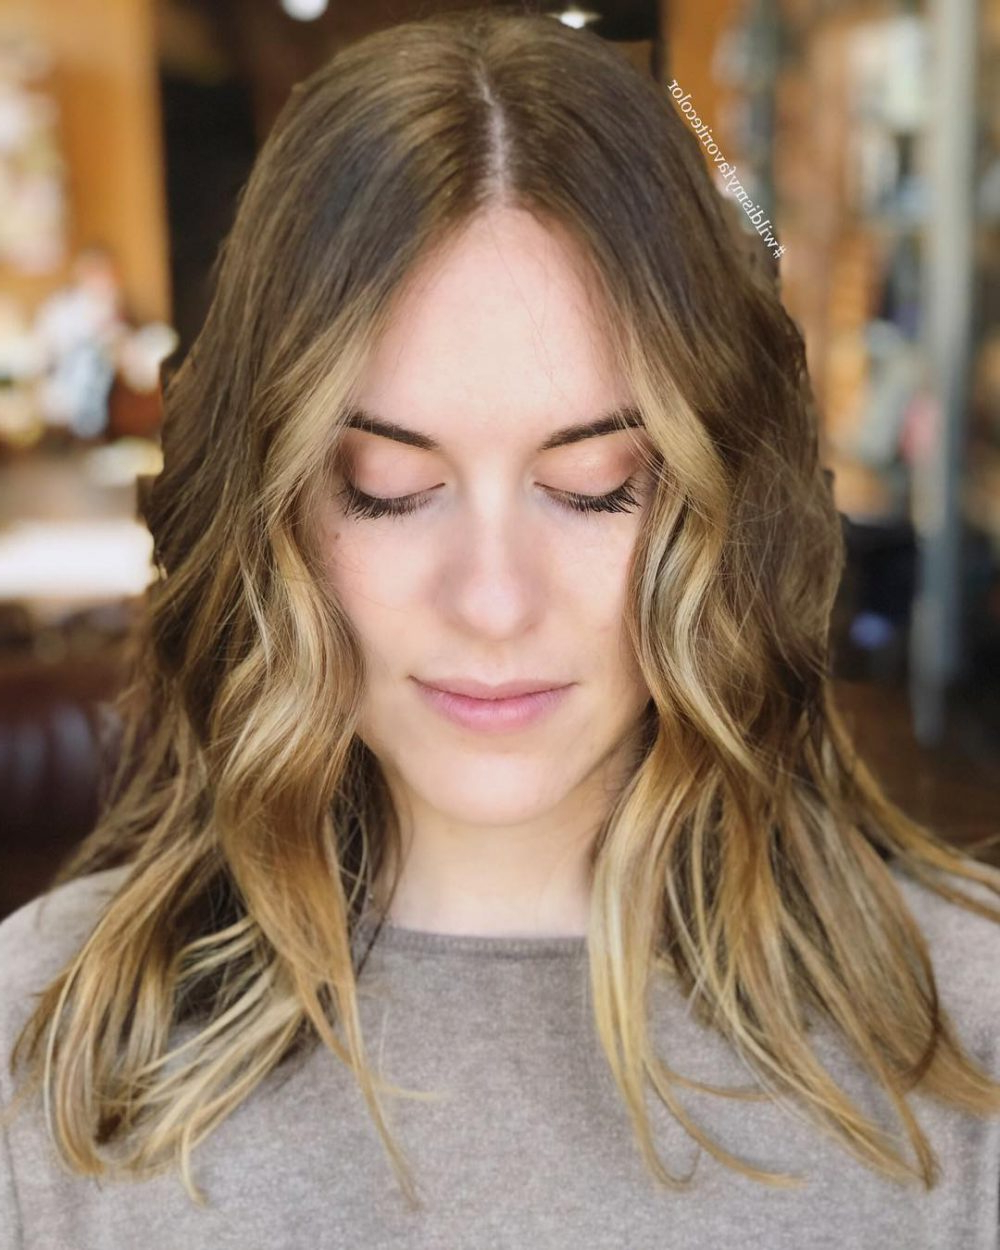 Fashionable Medium Haircuts With Layers For Round Faces Intended For 17 Flattering Medium Hairstyles For Round Faces In  (View 9 of 20)